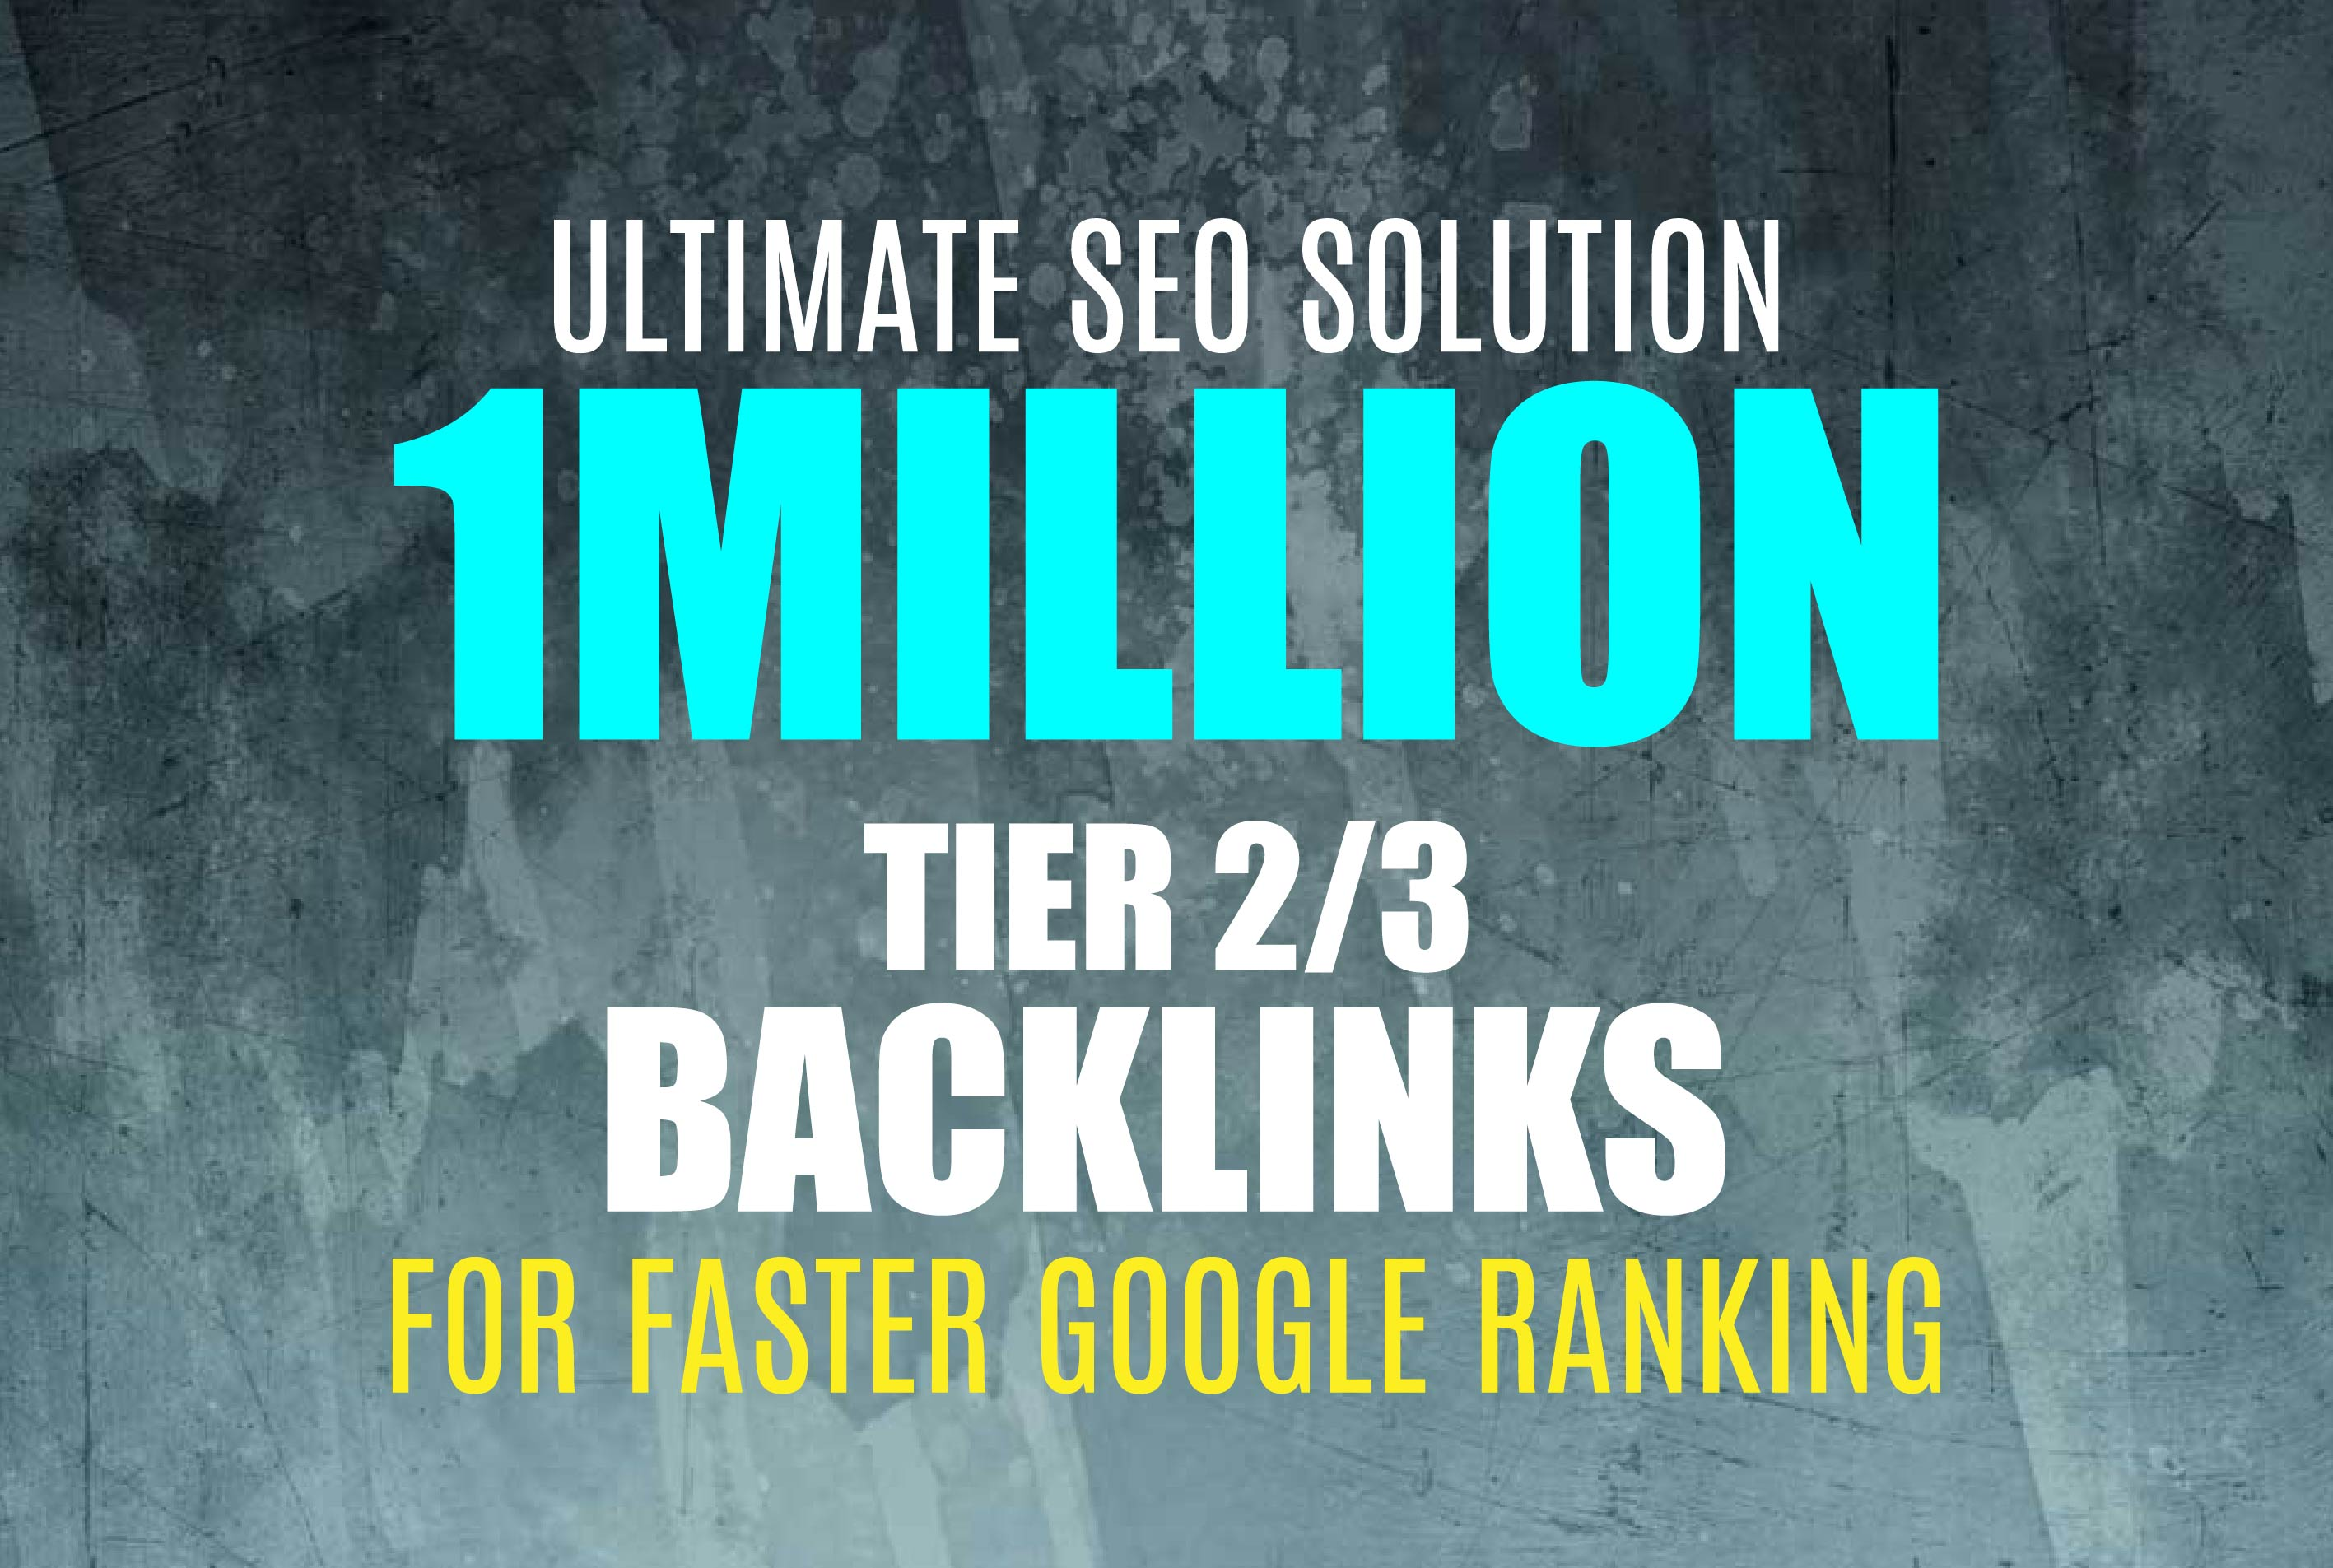 I will build 1million Tier 2 or 3 backlinks for faster google ranking